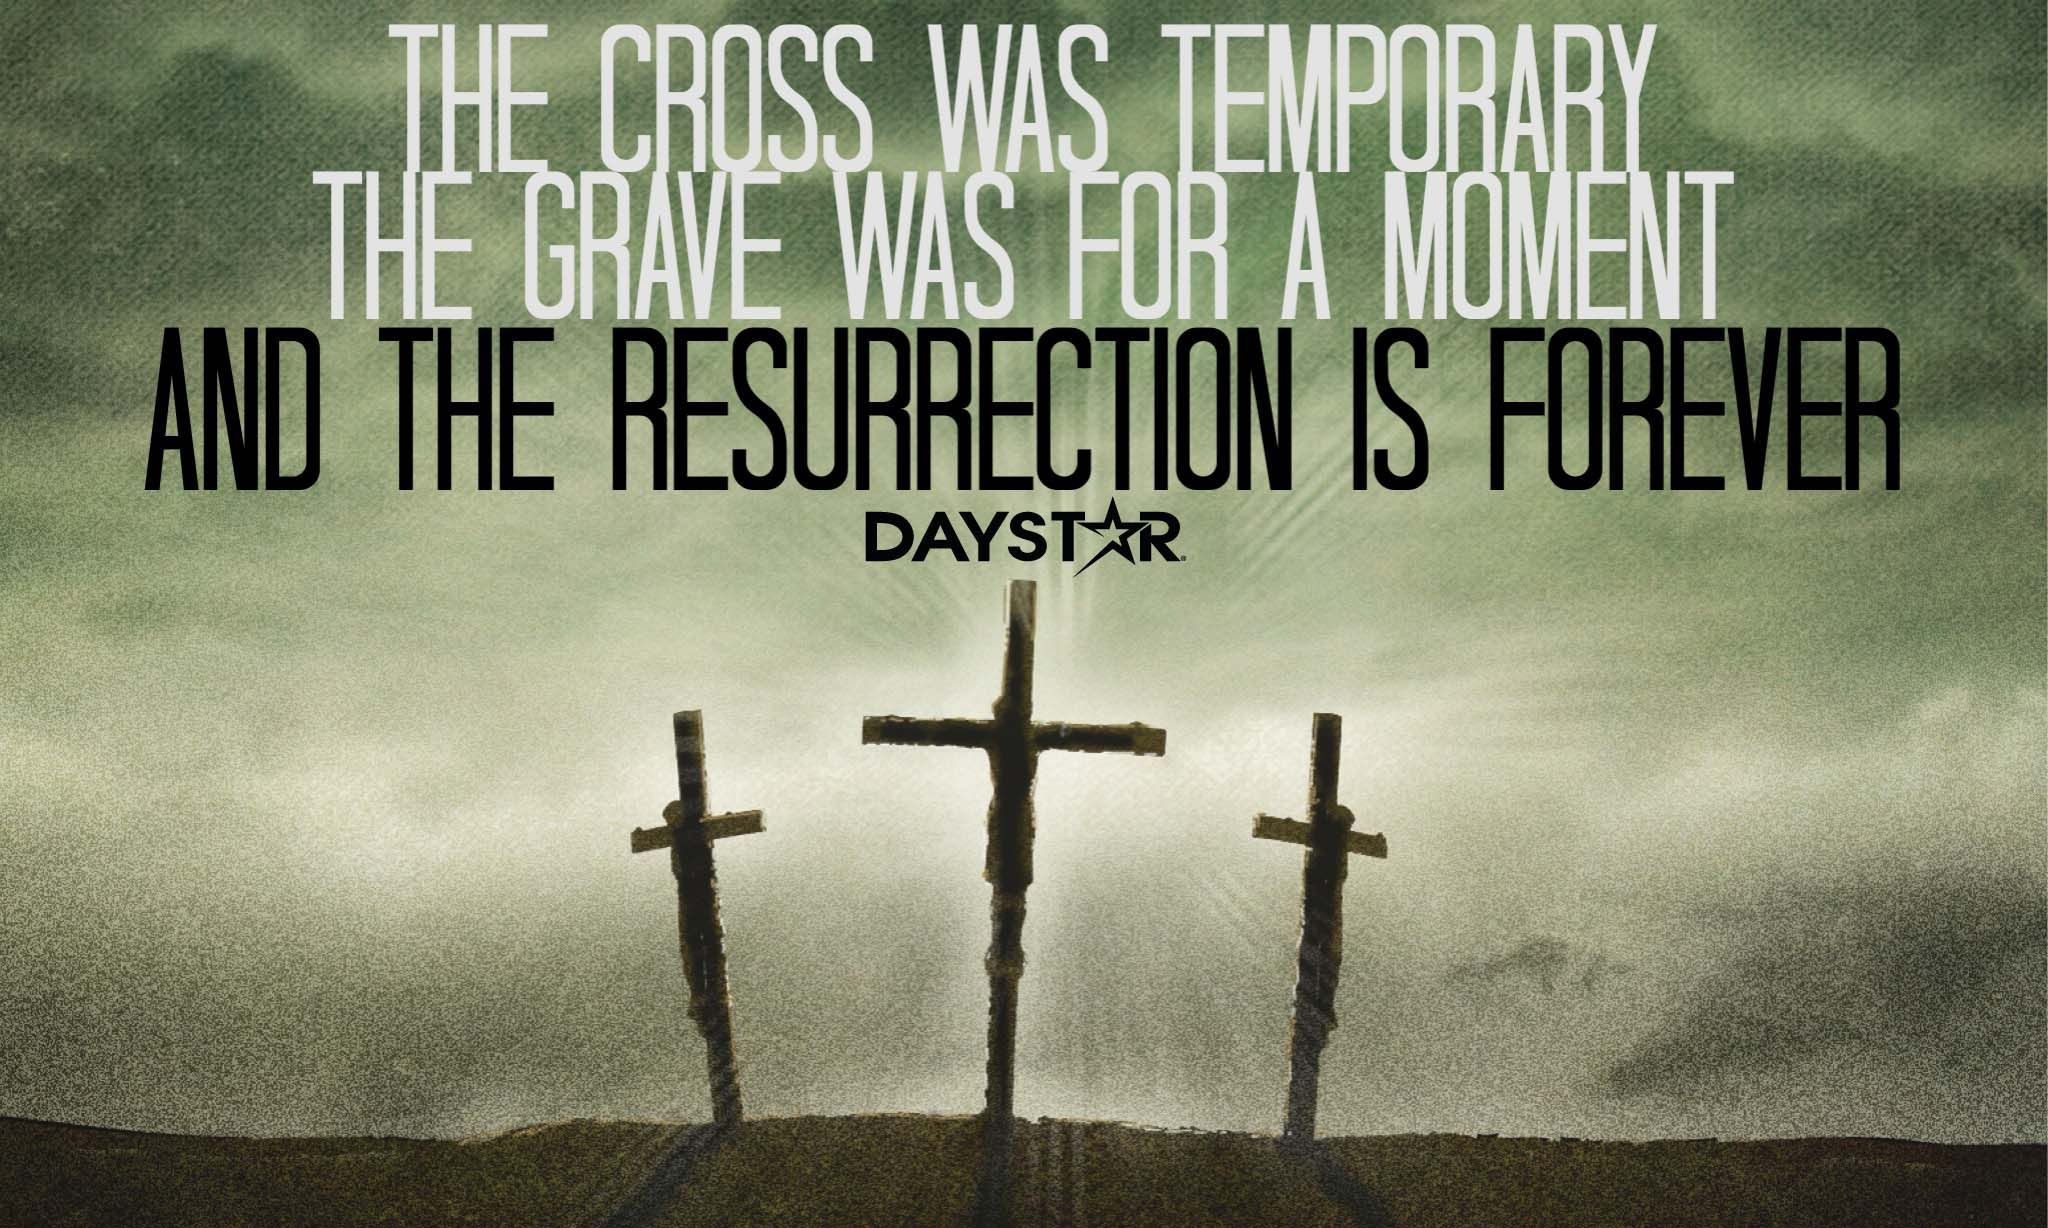 The Cross Was Temporary The Grave Was For A Moment And